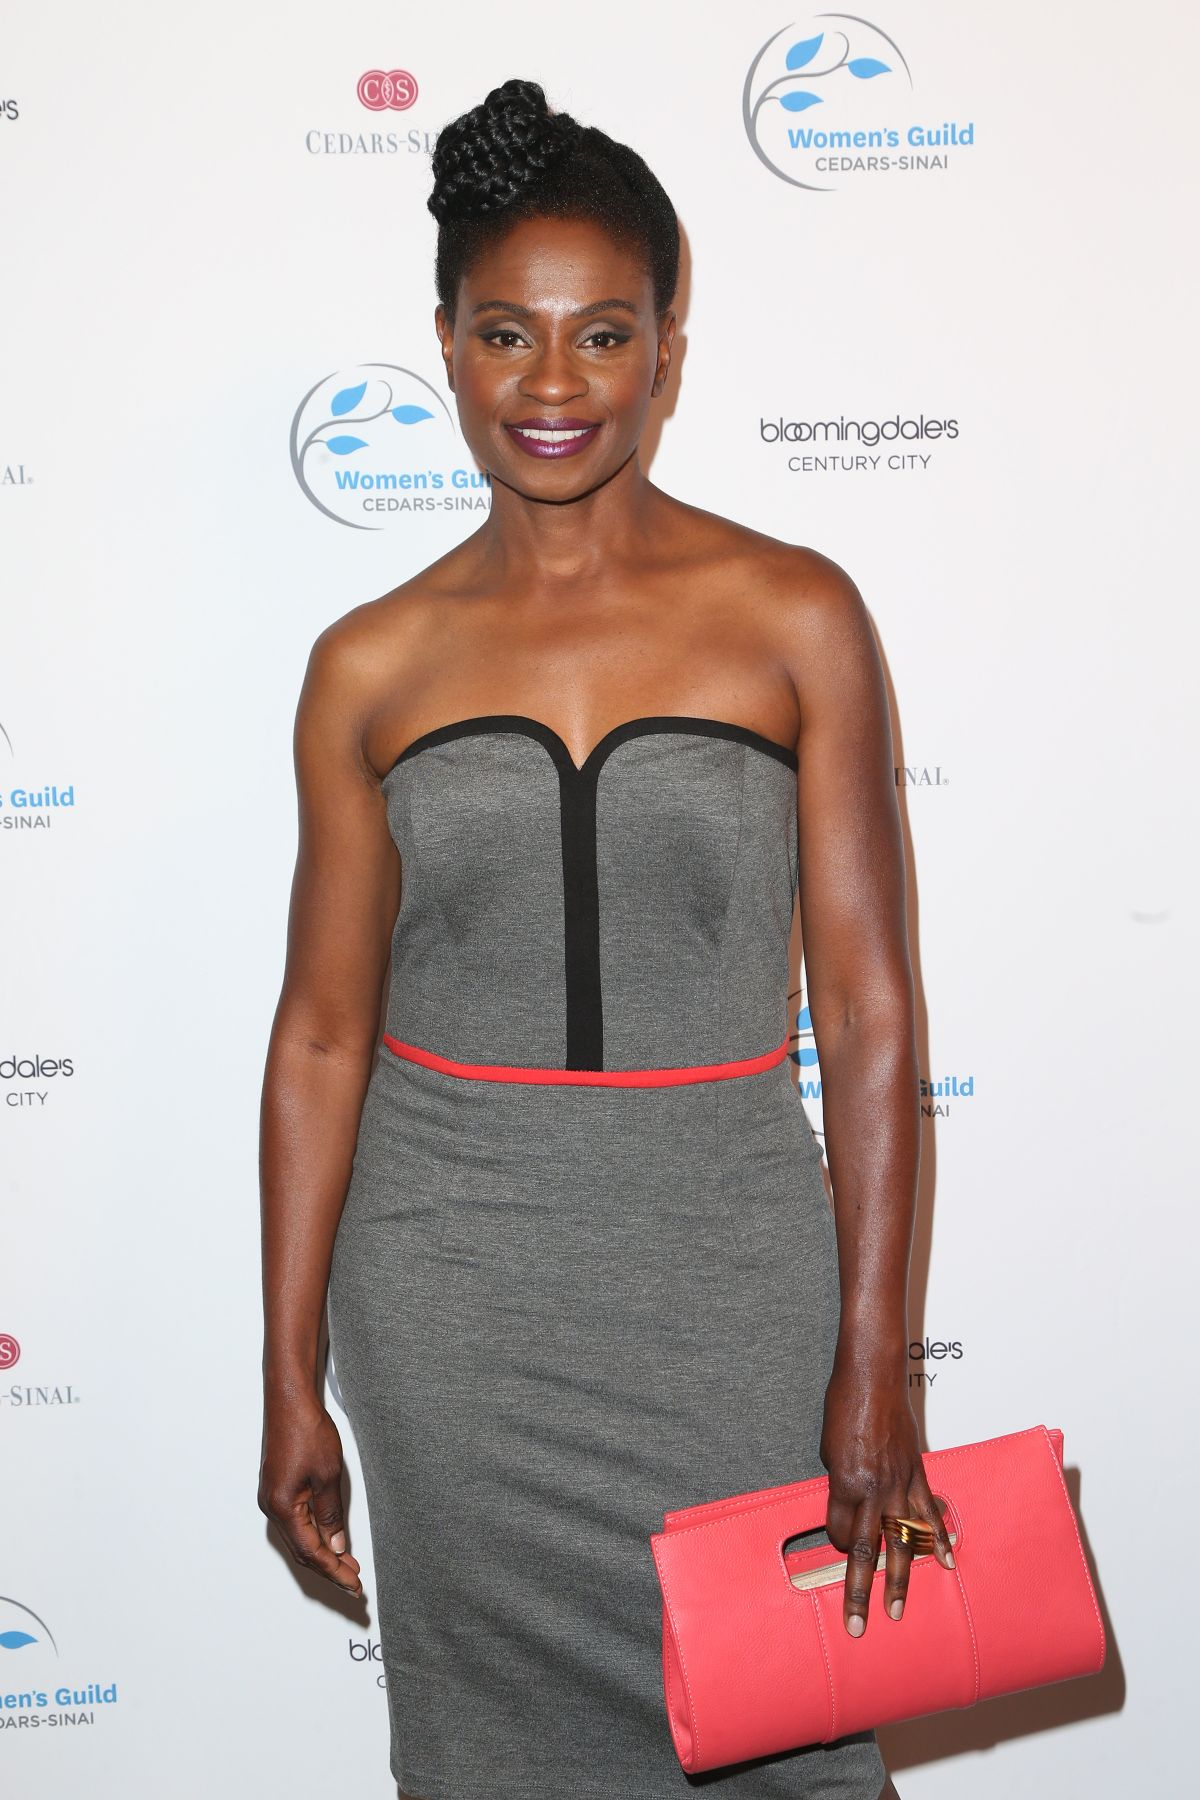 ADINA PORTER at Women's Guild Cedars Sinai Annual Spring Luncheon in Los Angeles 04/20/2017   adina-porter-at-women-s-guild-cedars-sinai-annual-spring-luncheon-in-los-angeles-04-20-2017_9